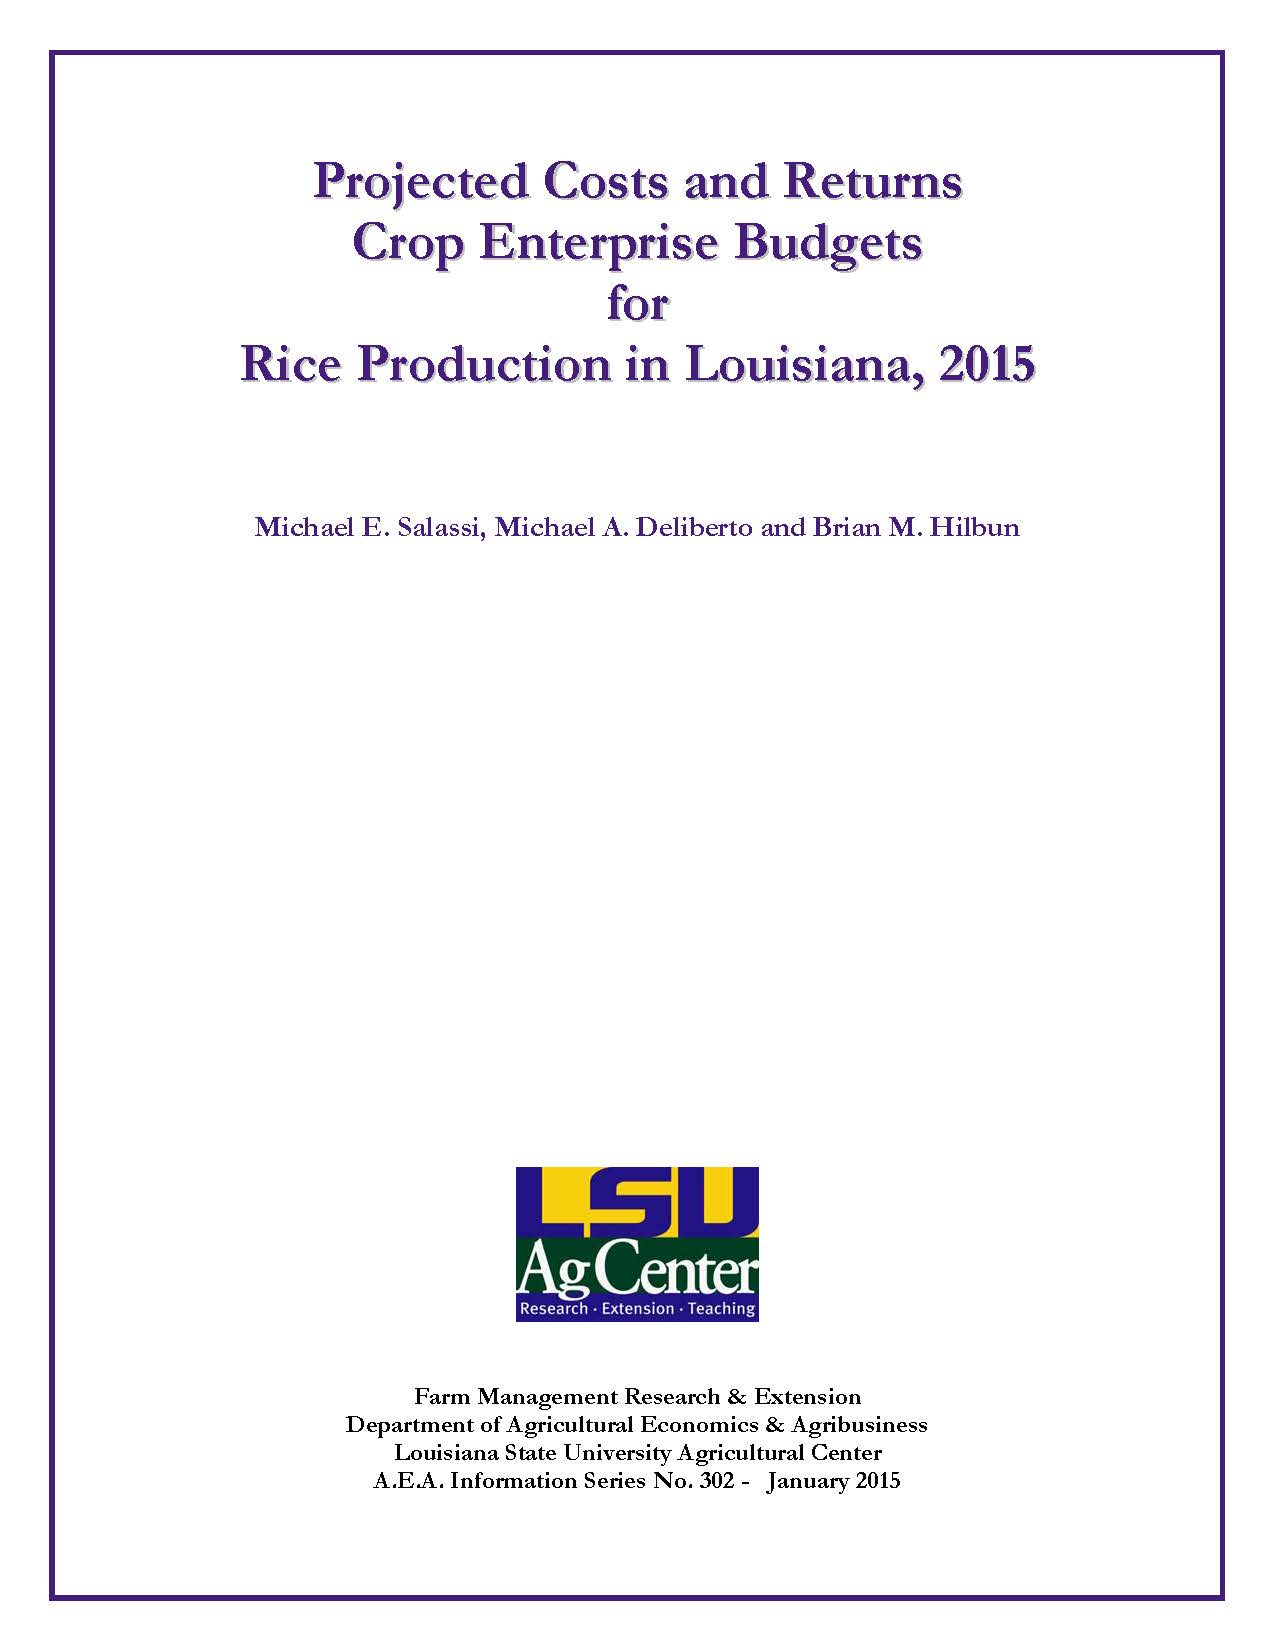 Projected Costs and Returns Crop Enterprise Budgets for Rice Production in Louisiana 2015